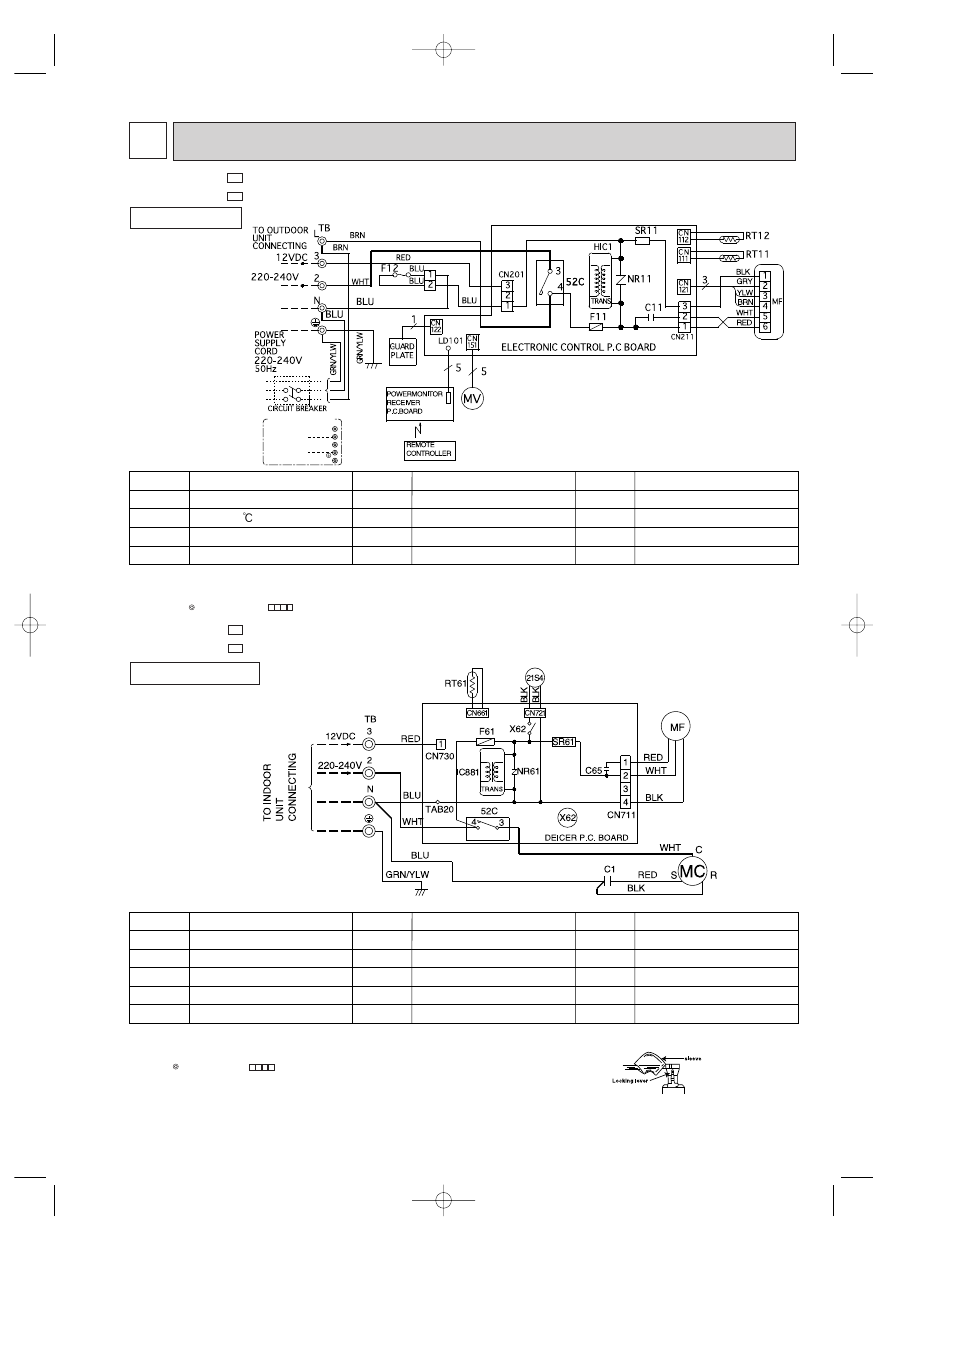 Wiring diagram 5, Msh-07nv - msh-09nv, Models wiring diagram muh-07nv -  muh-09nv | MITSUBISHI ELECTRIC MSH-07NV User Manual | Page 15 / 80